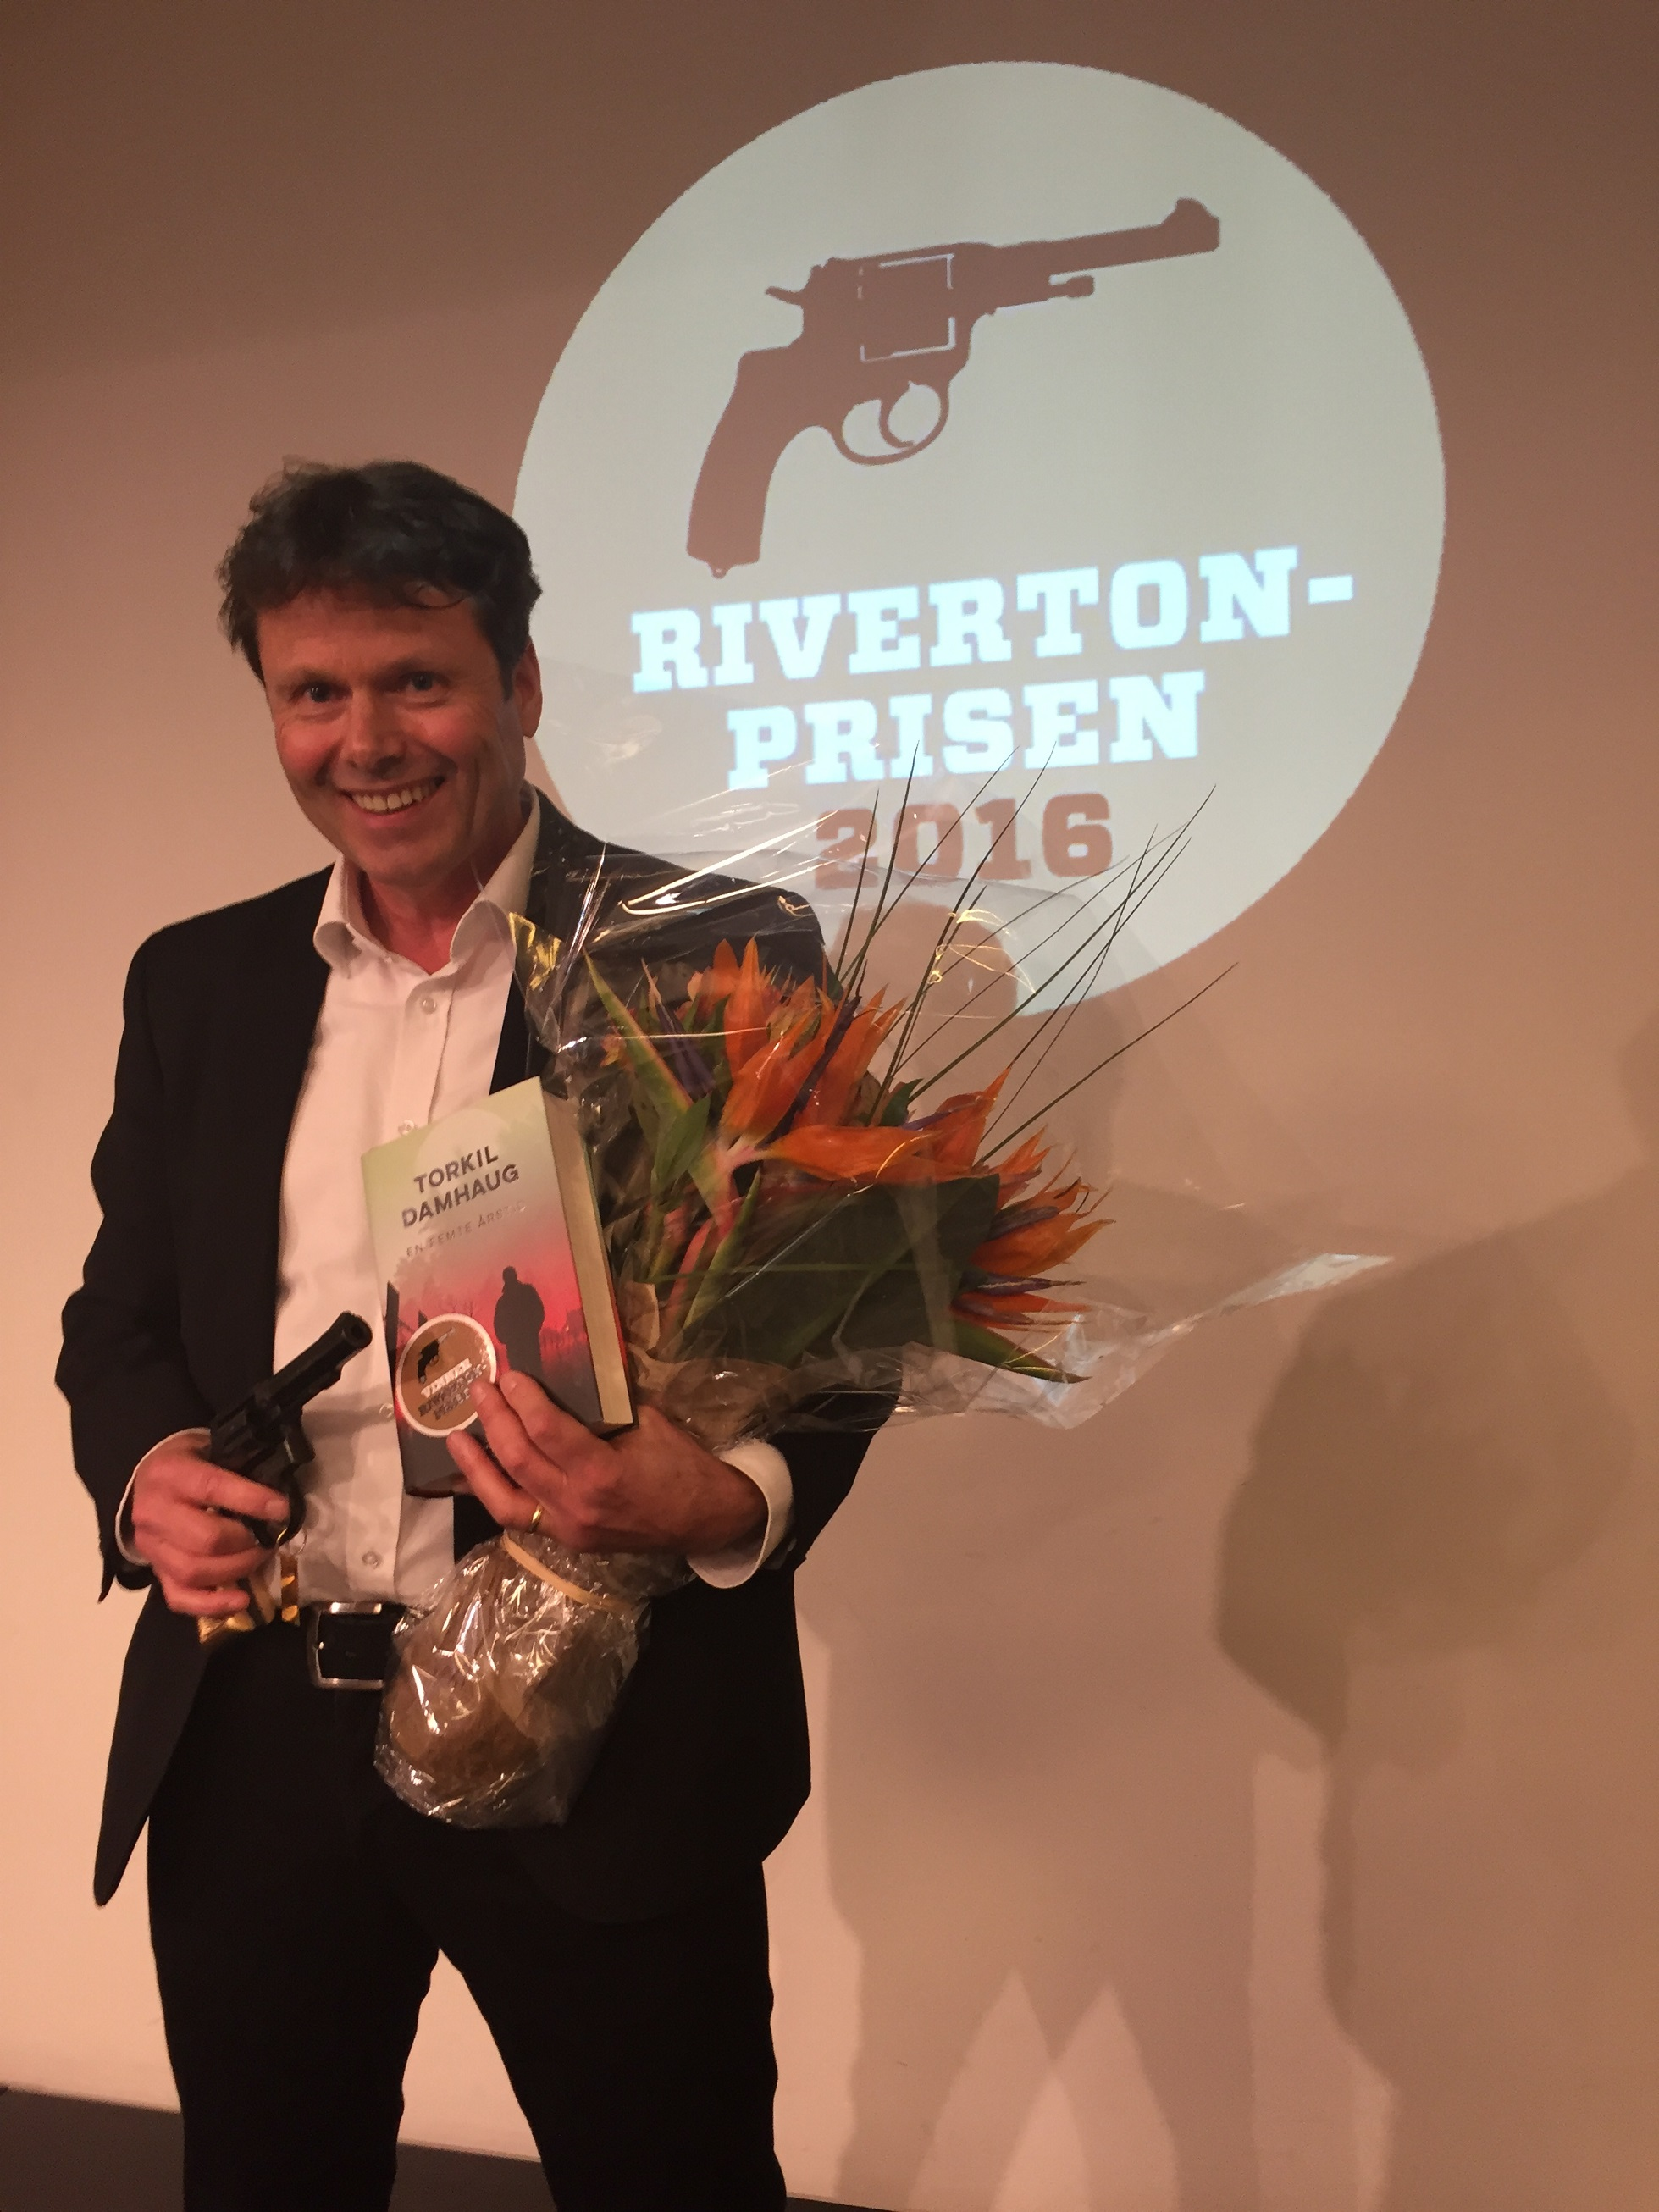 Rivertonprisen for 2016 til Torkil Damhaug